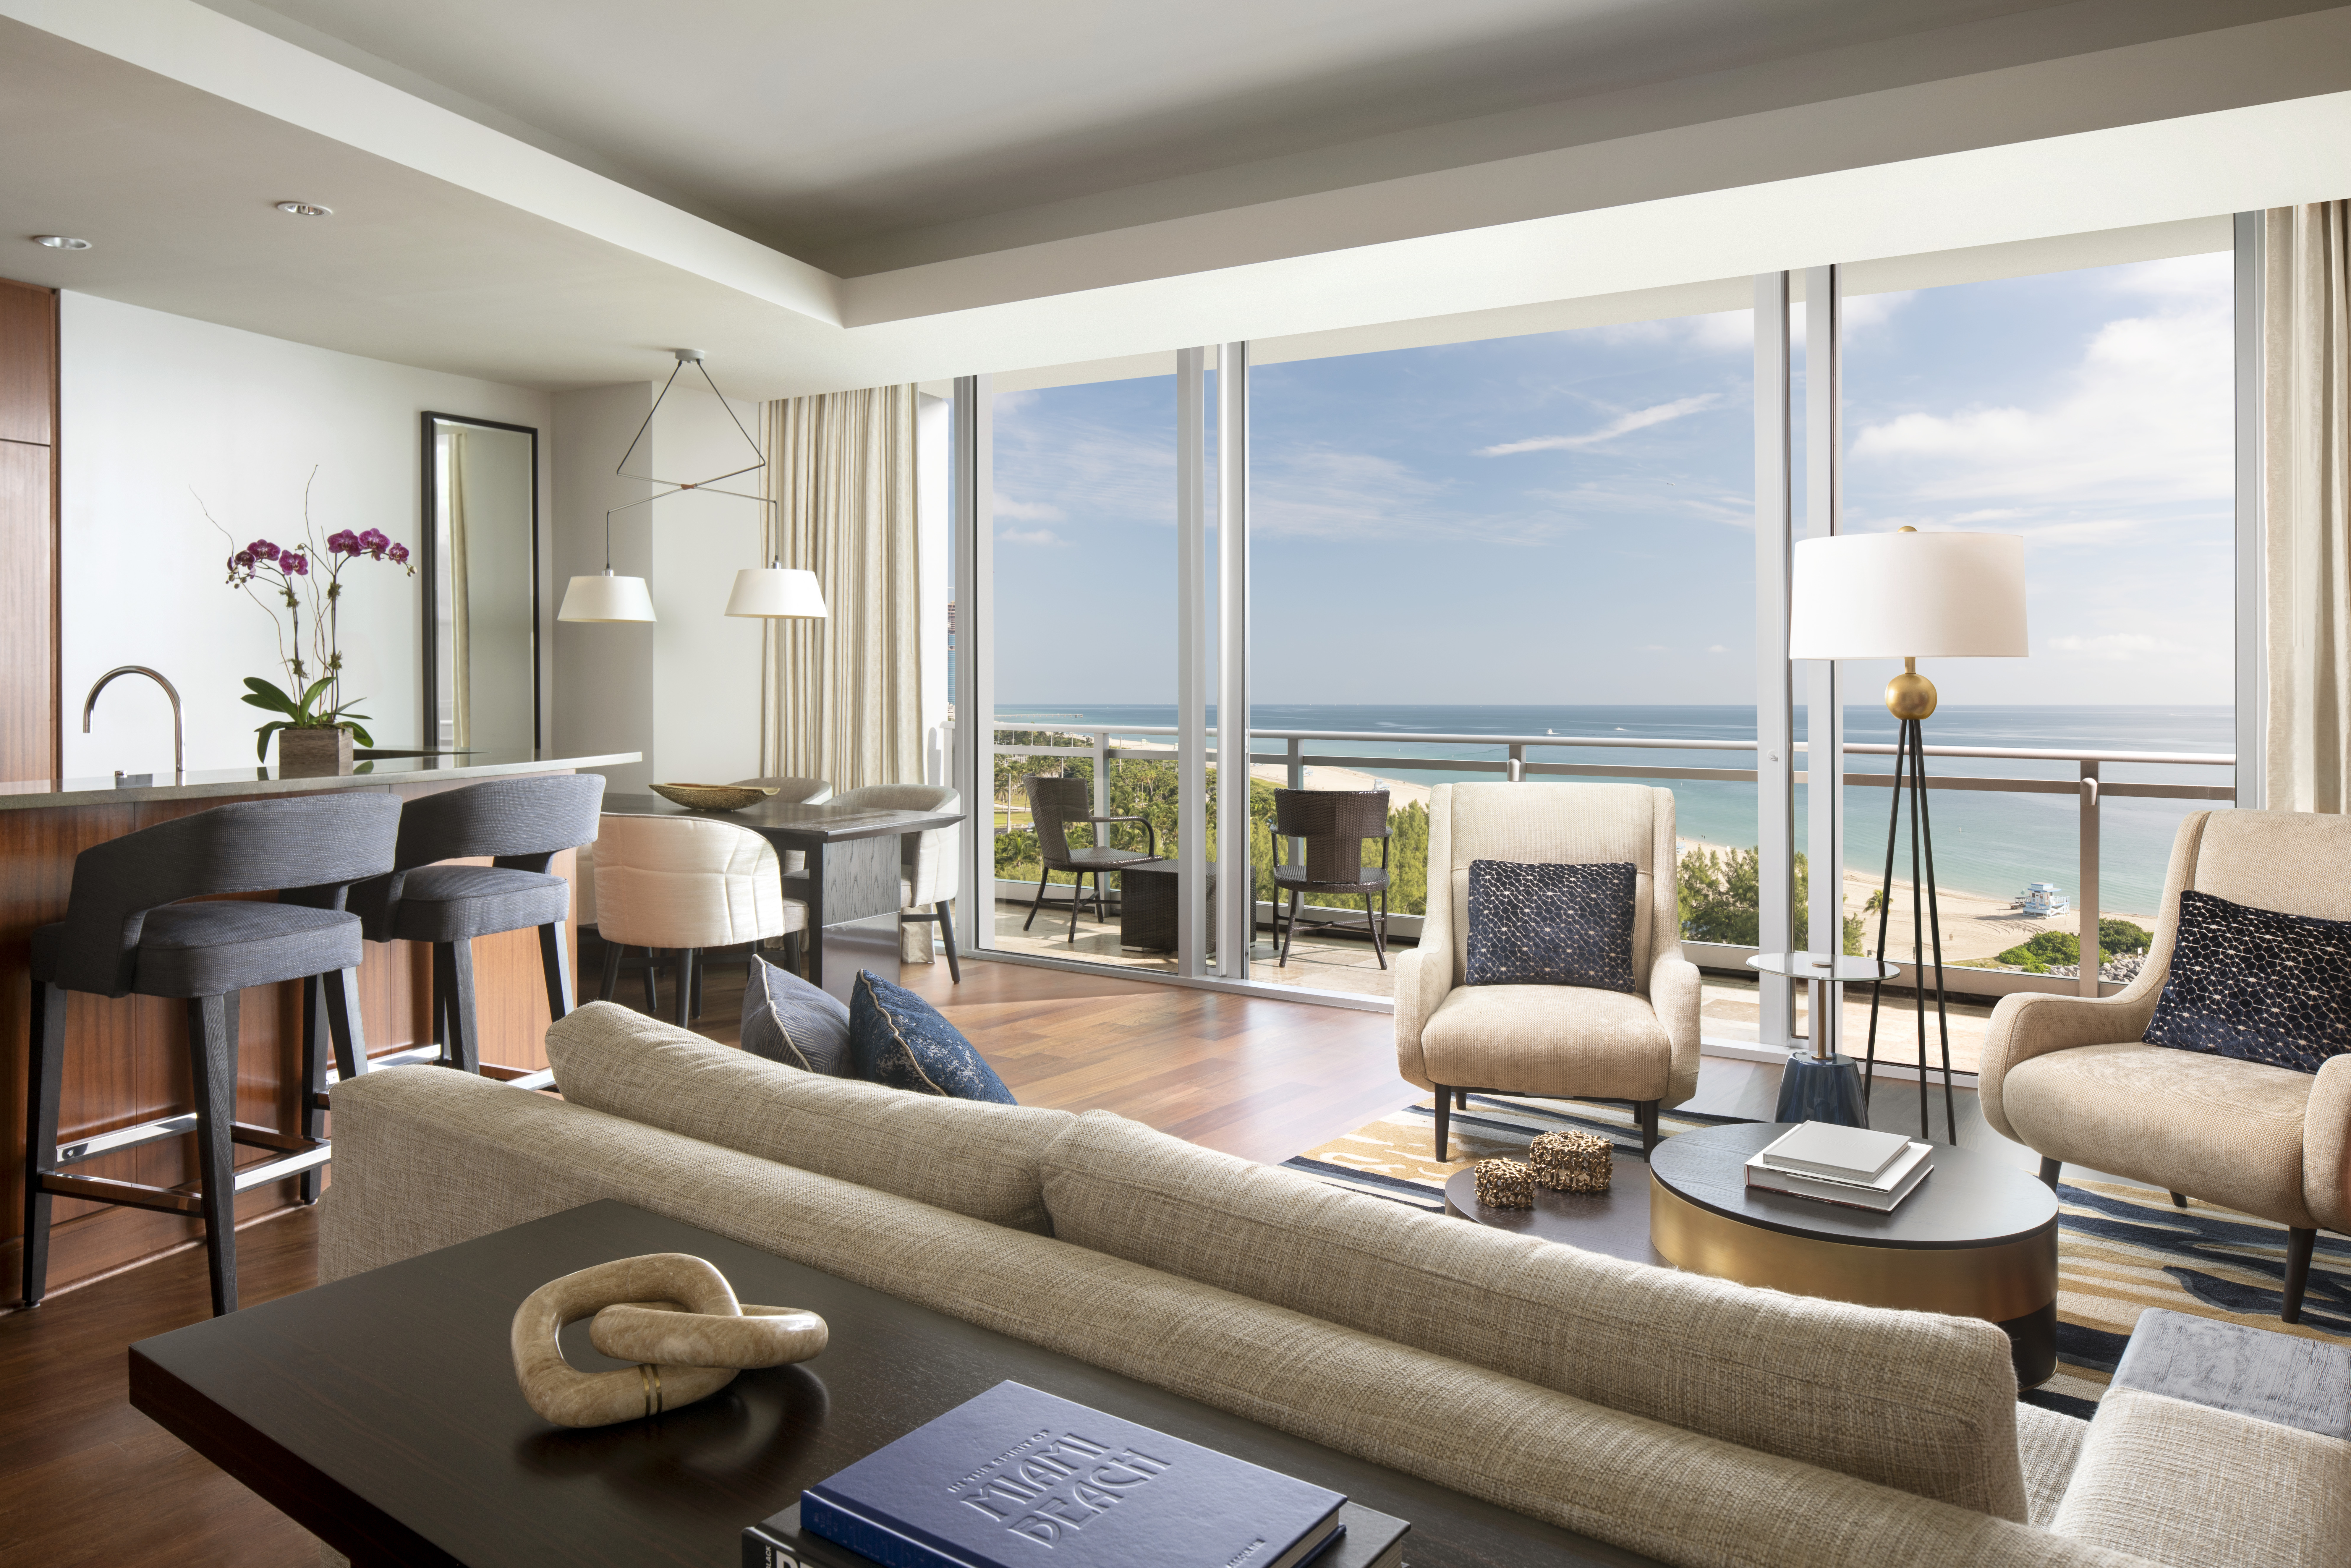 Living room with ocean view,The Ritz-Carlton Residences, Bal Harbour